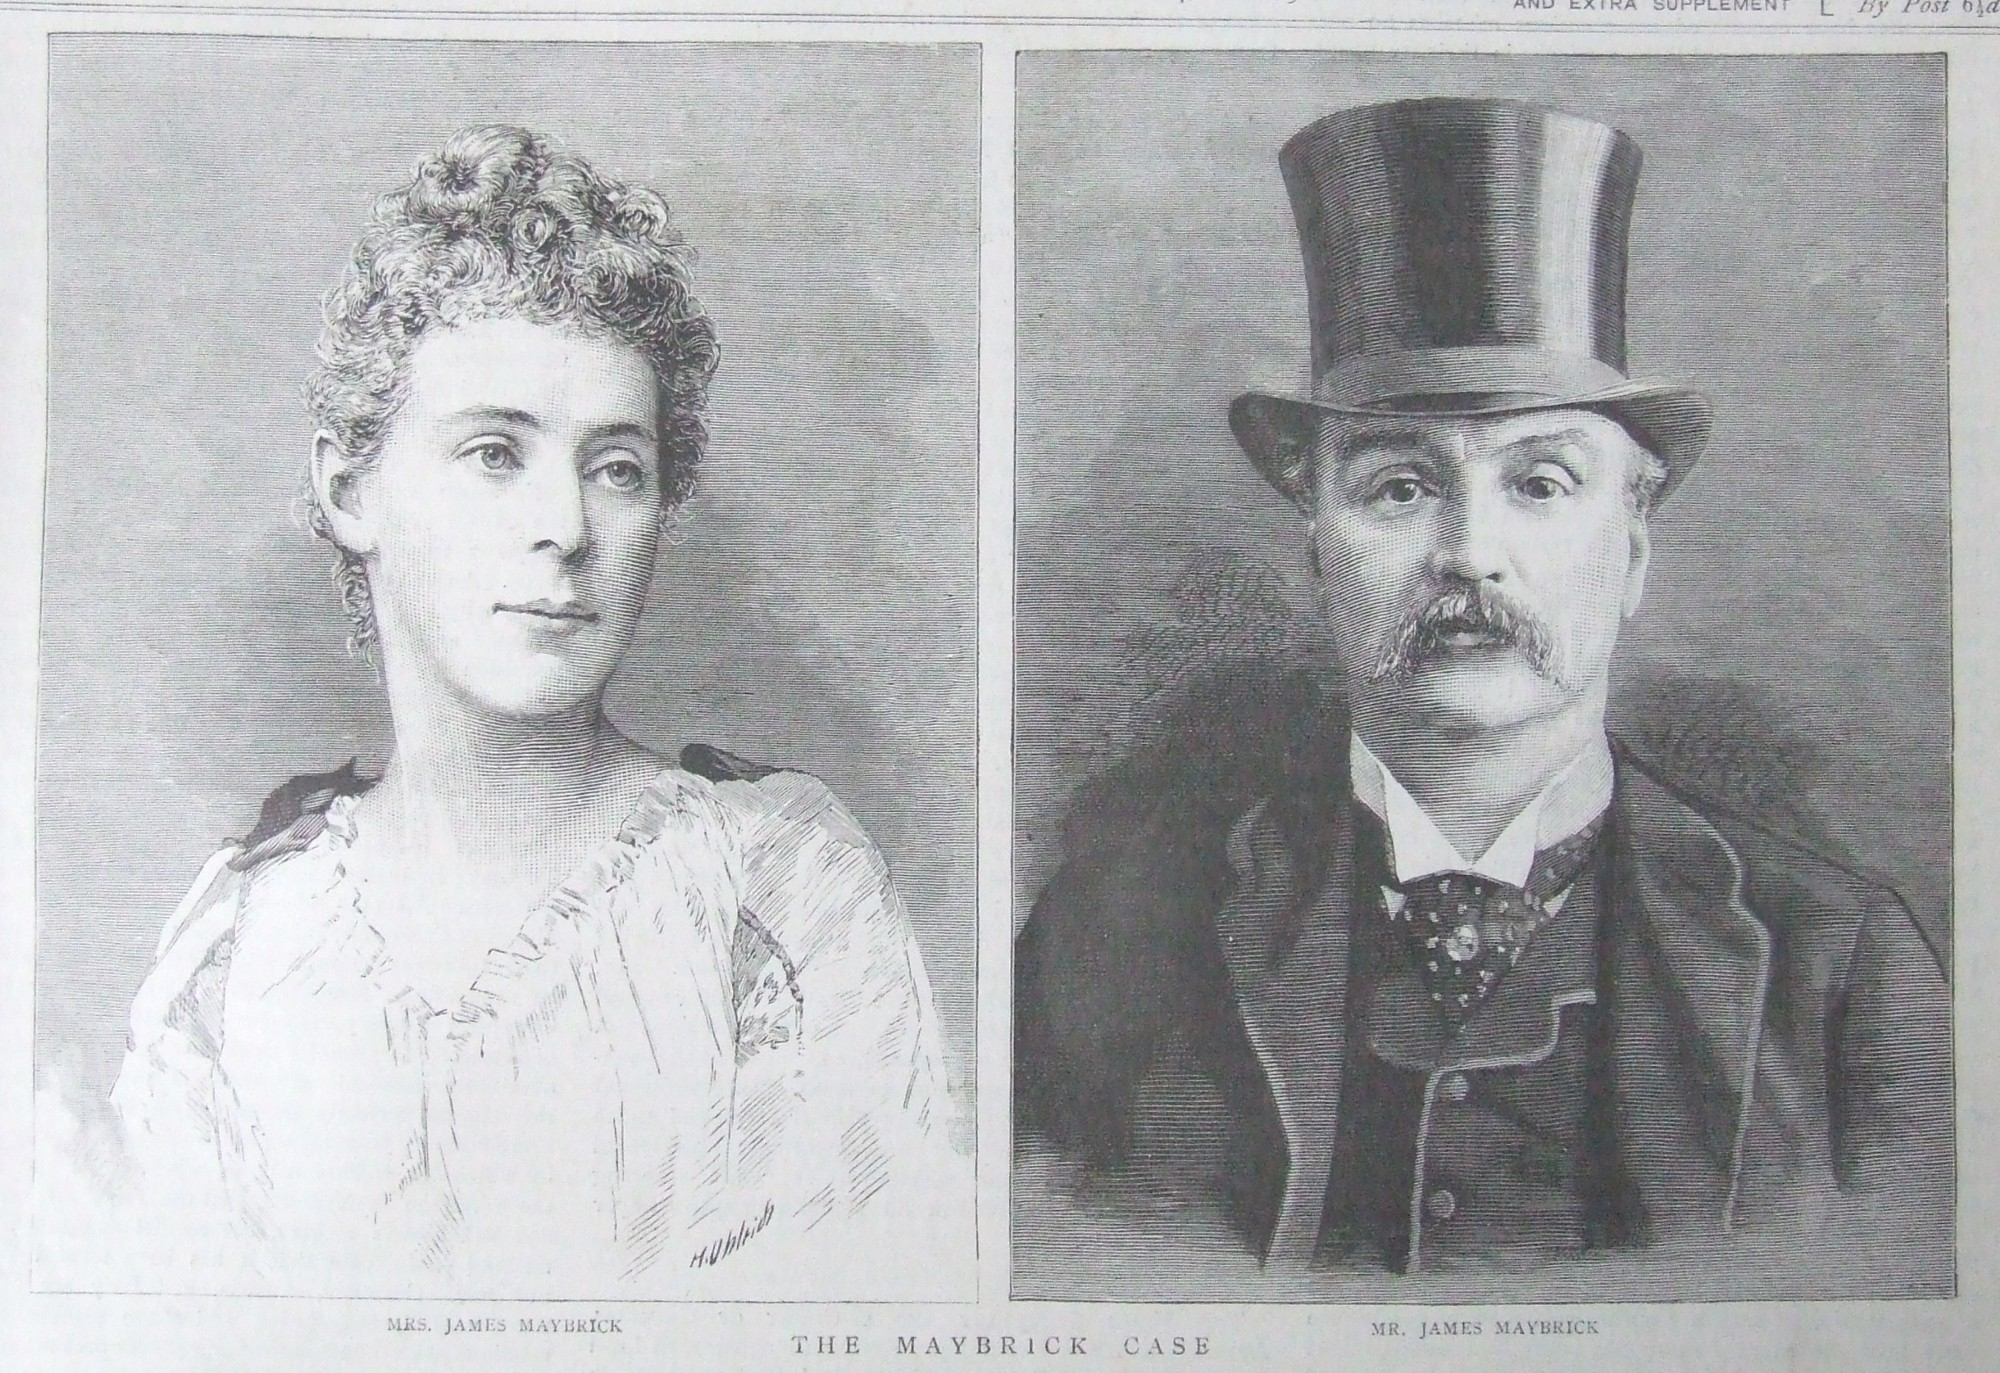 Florence and Jame Maybrick both may have been killers